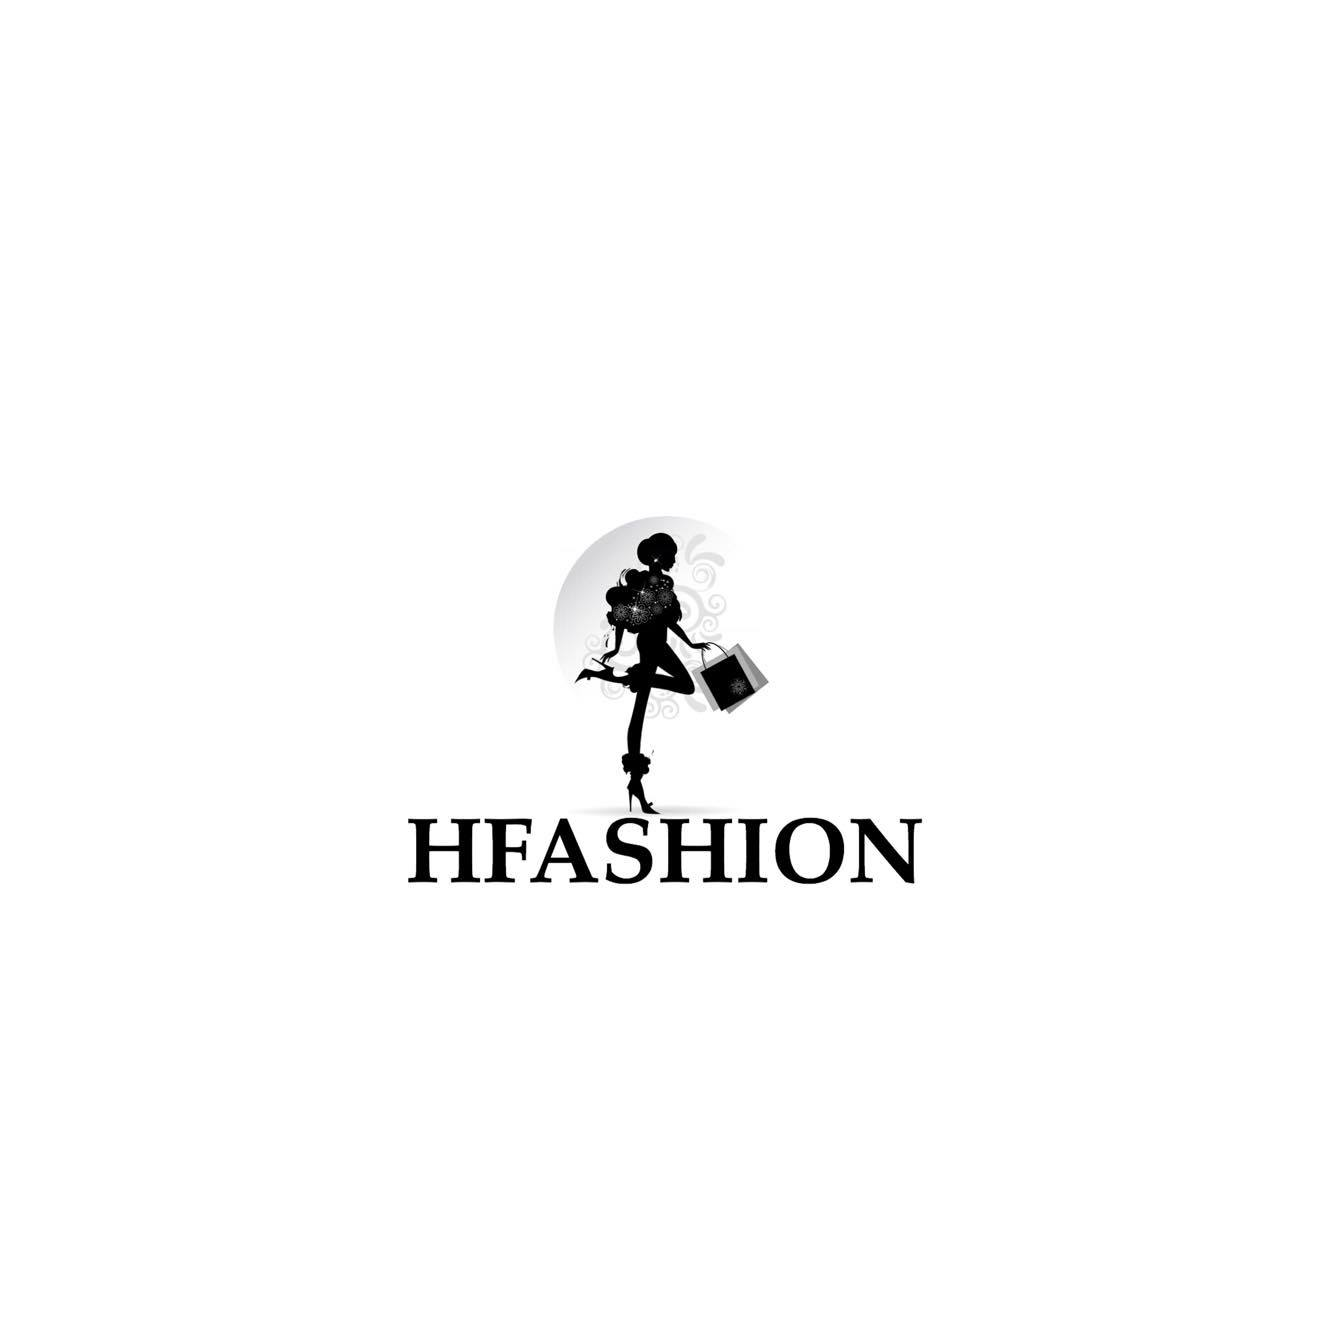 HFashion